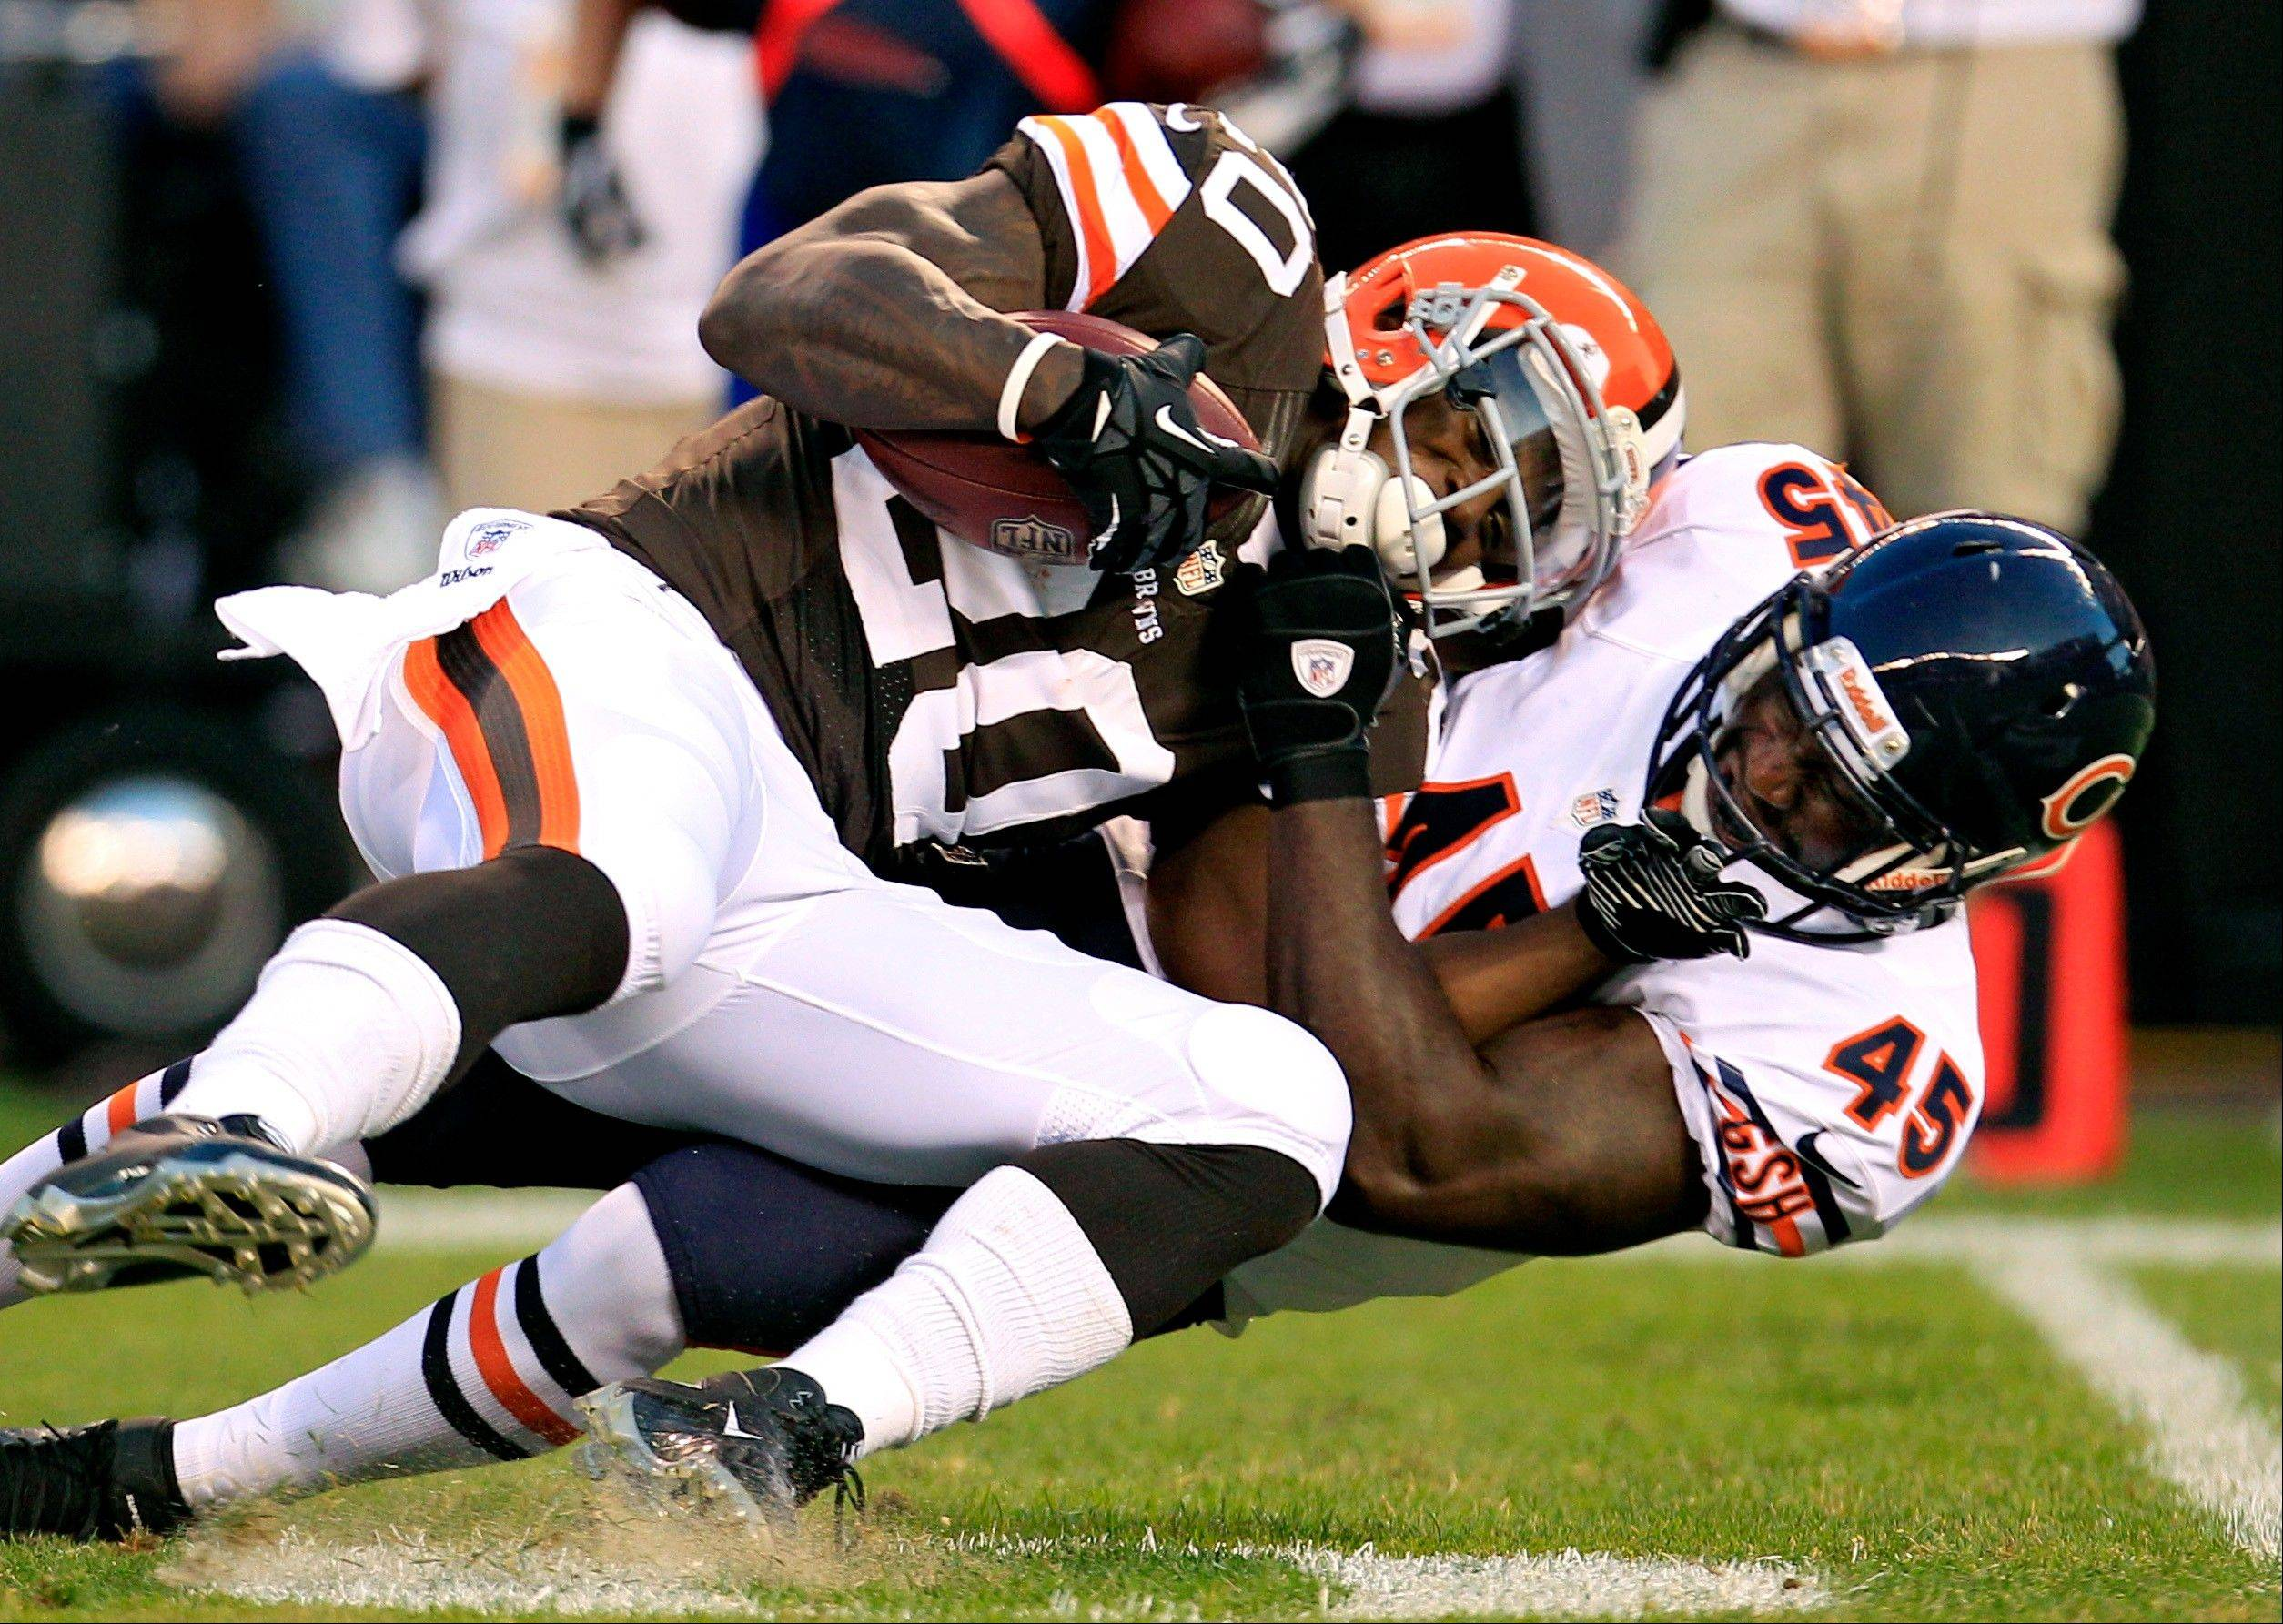 Chicago Bears linebacker Xavier Adibi tackles Cleveland Browns running back Montario Hardesty in the first quarter of a preseason NFL football game Thursday, Aug. 30, 2012, in Cleveland.